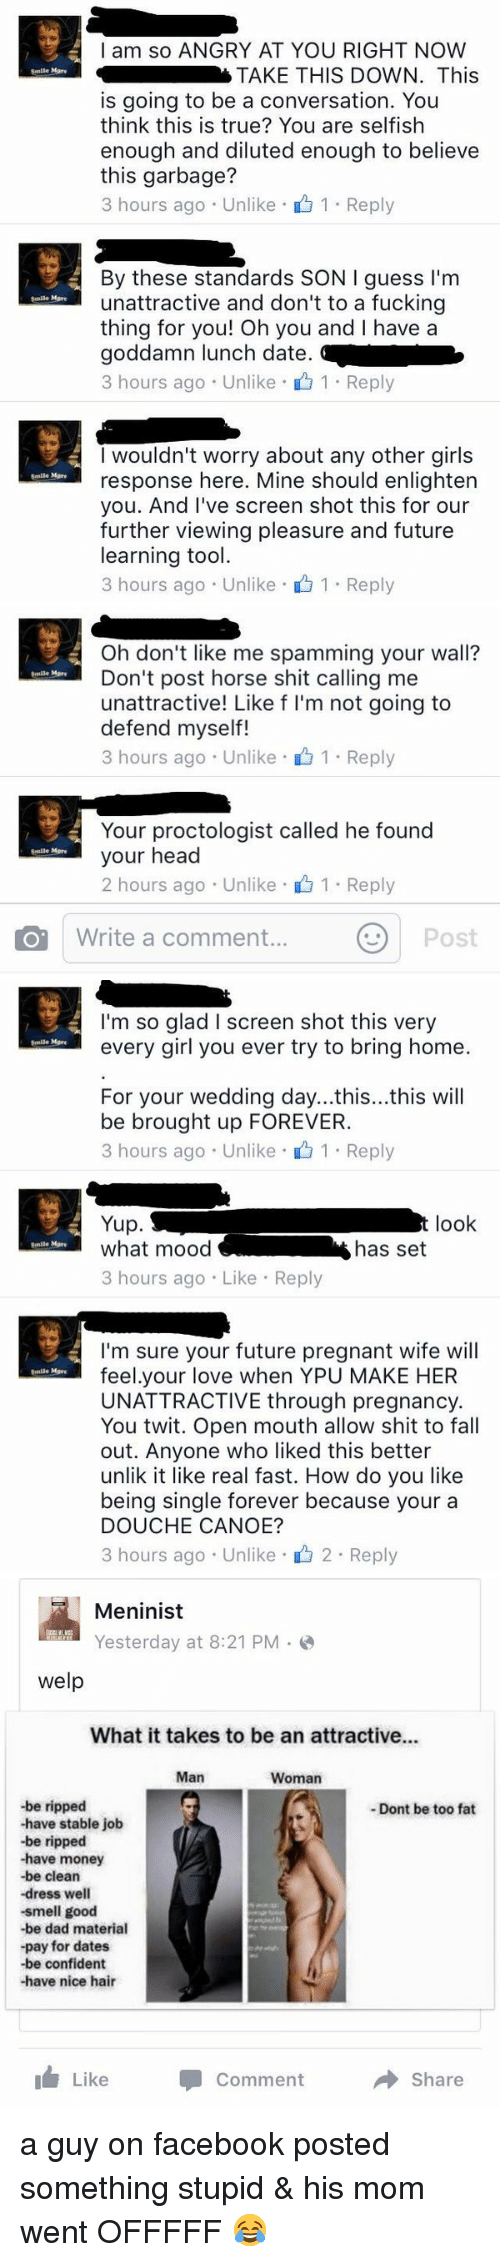 Pregnant Wife: I am so ANGRY AT YOU RIGHT NOW  TAKE THIS DOWN. This  Smile More  is going to be a conversation. You  think this is true? You are selfish  enough and diluted enough to believe  this garbage?  3 hours ago Unlike 1. Reply  By these standards SON I guess I'm  unattractive and don't to a fucking  More  thing for you! Oh you and have a  goddamn lunch date.  3 hours ago Unlike 1 Reply  I wouldn't worry about any other girls  response here. Mine should enlighten  Smile More  you. And I've screen shot this for our  further viewing pleasure and future  learning tool  3 hours ago Unlike 1 Reply   Oh don't like me spamming your wall?  Don't post horse shit calling me  Smile More  unattractive! Like f l'm not going to  defend myself!  3 hours ago Unlike 1 Reply  Your proctologist called he found  your head  Smile More  2 hours ago Unlike 1 Reply  O Write a comment...  Post   smile More  Smile More  Smile More  I'm so glad l screen shot this very  every girl you ever try to bring home.  For your wedding day...this...this will  be brought up FOREVER.  3 hours ago Unlike 1 Reply  Yup.  t look  what mood  has set  3 hours ago Like Reply  I'm sure your future pregnant wife will  feel.your love when YPU MAKE HER  UNATTRACTIVE through pregnancy.  You twit. Open mouth allow shit to fall  out. Anyone who liked this better  unlik it like real fast. How do you like  being single forever because your a  DOUCHE CANOE?  3 hours ago Unlike 2 Reply   Meninist  Yesterday at 8:21 PM  welp  What it takes to be an attractive...  Man  Woman  -be ripped  -Dont be too fat  -have stable job  -be ripped  be clean  -dress well  smell good  -be dad material  -pay for dates  -be confident  have nice hair  Like  Comment  Share a guy on facebook posted something stupid & his mom went OFFFFF 😂